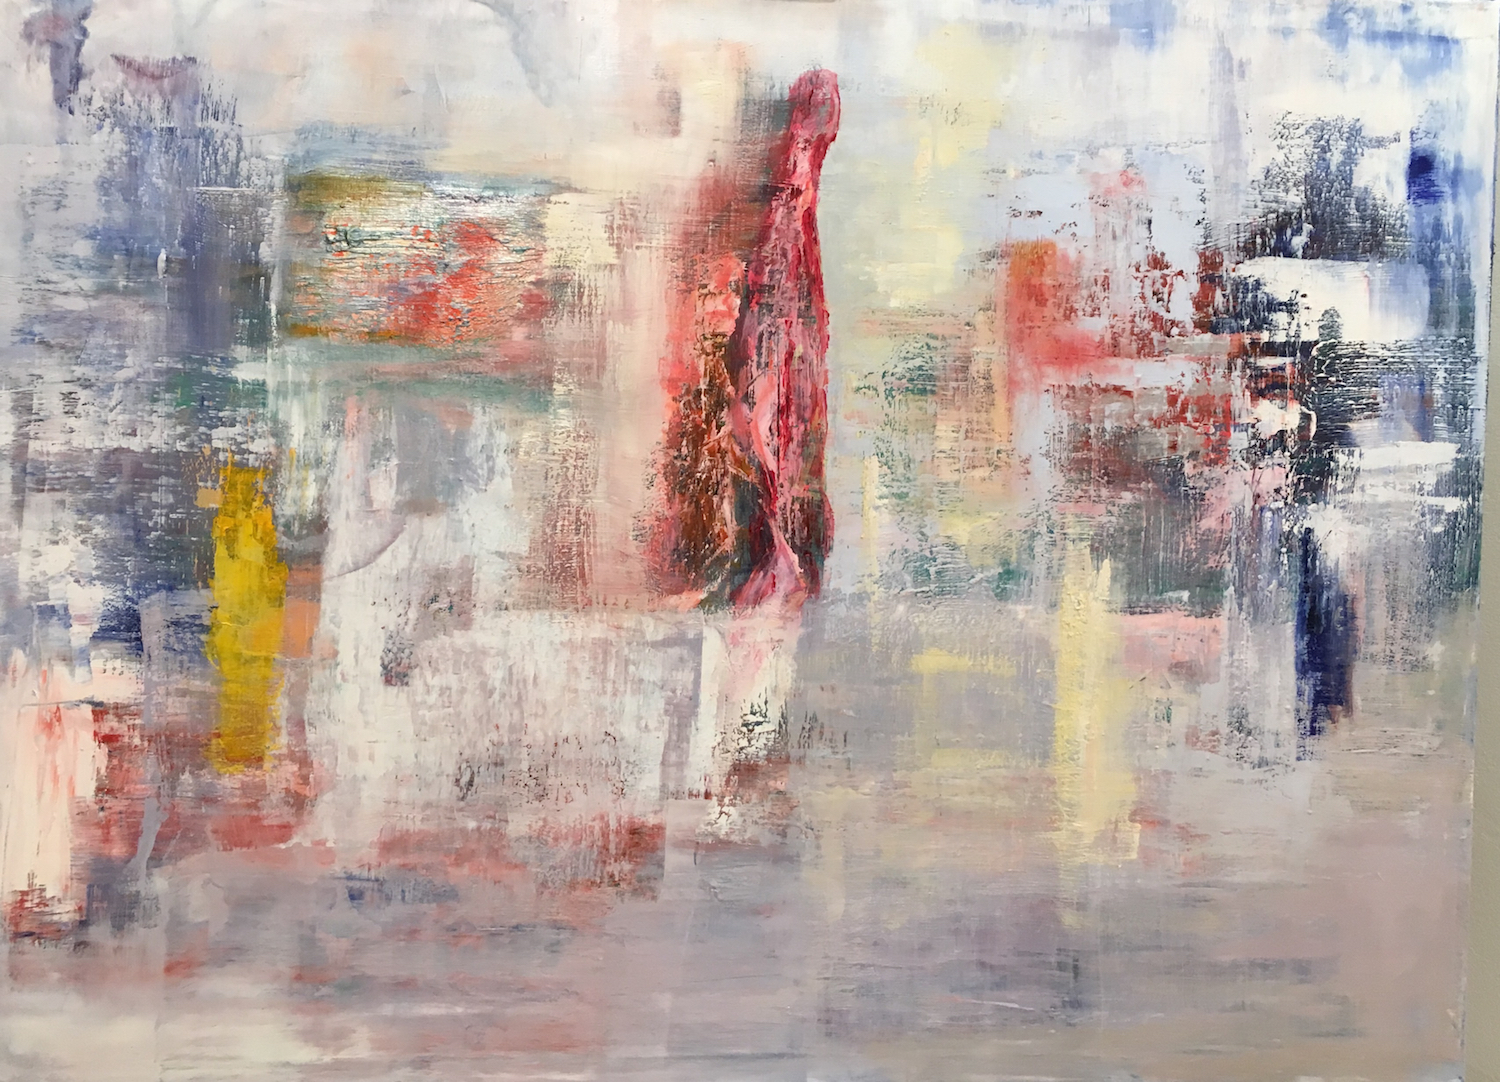 Untitled  oil on canvas  80 x 40cm  Corinna Boughton (Sold)